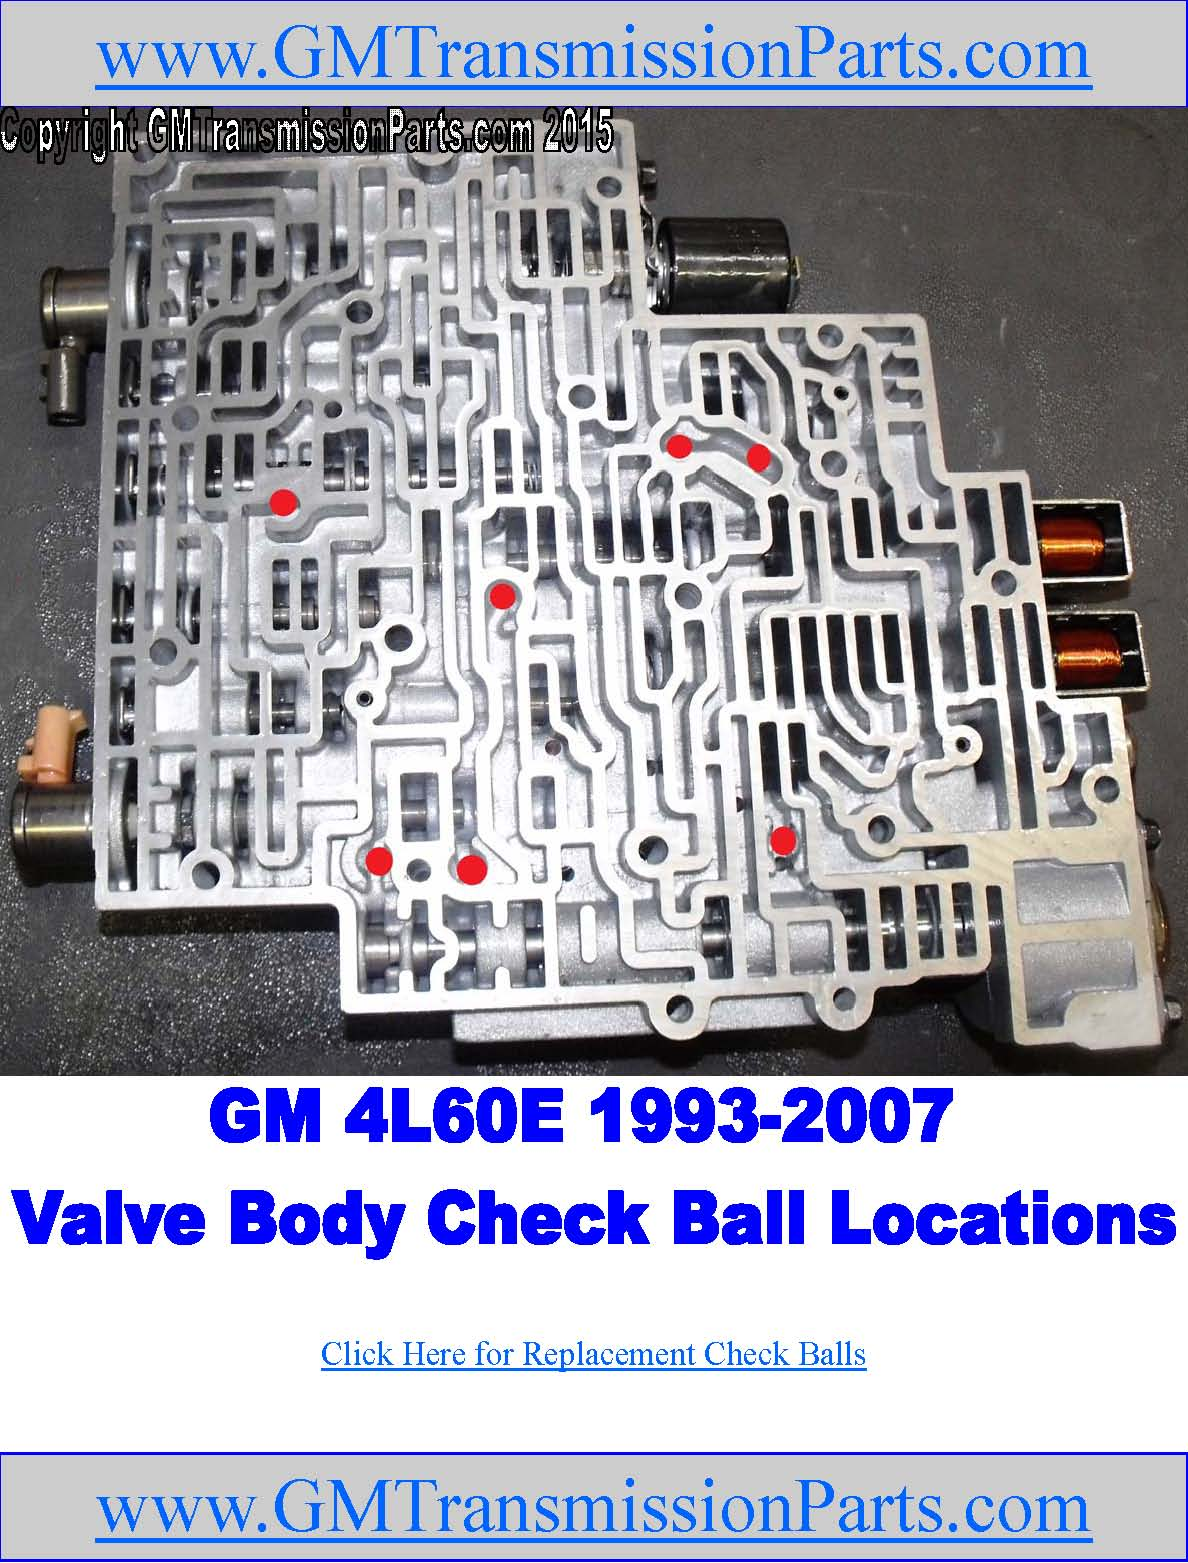 hight resolution of 4l60e valve body check ball locations